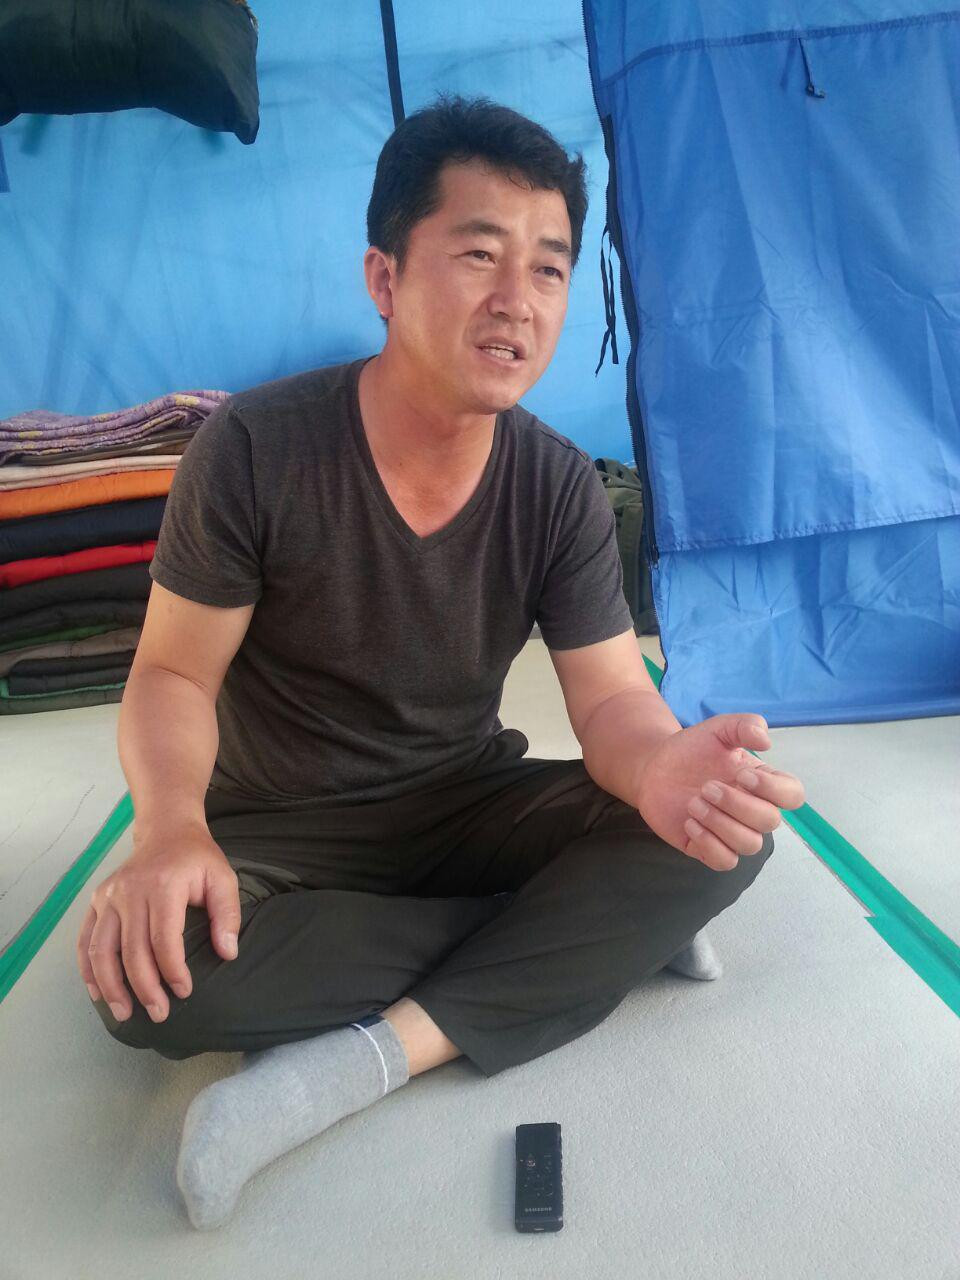 Kim Seung Seok in the Seoul City Plaza occupation tent.